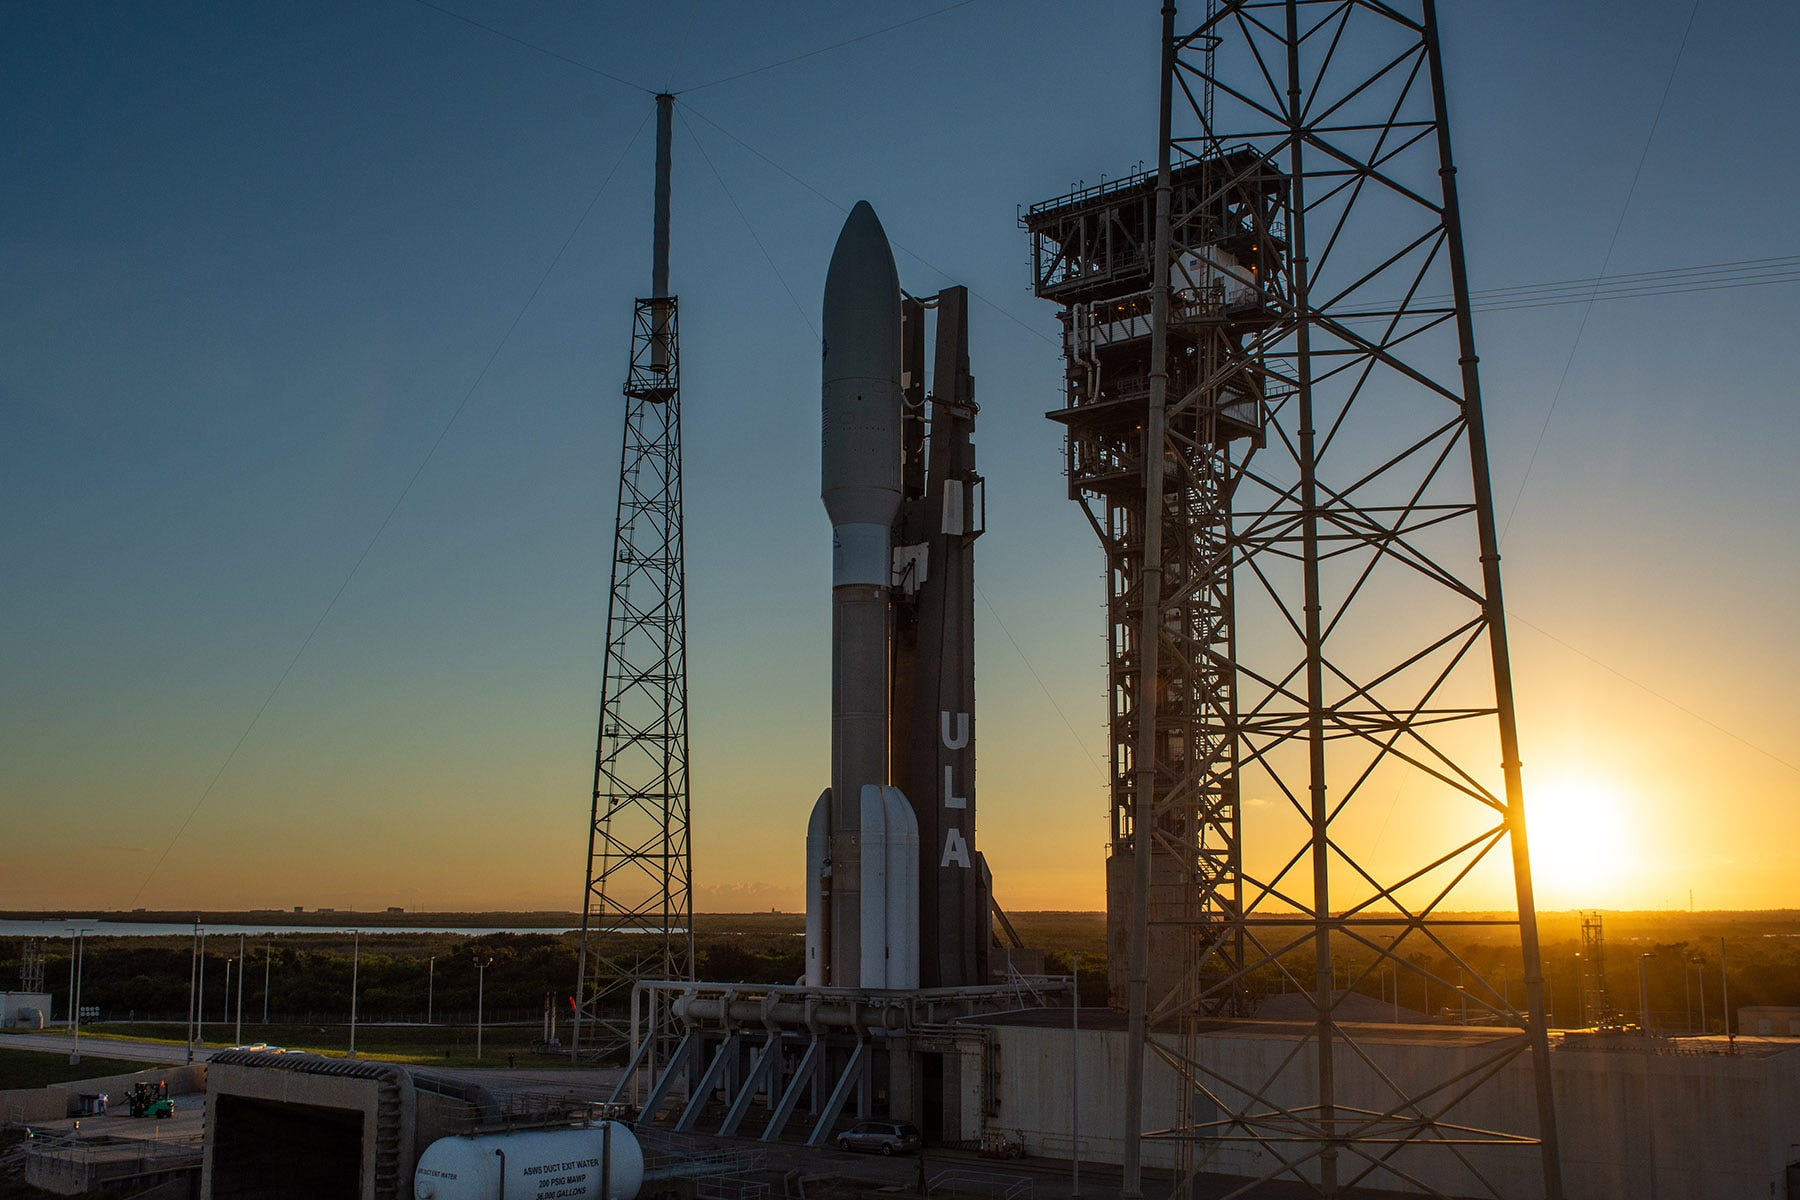 bd9f18b9-de52-41c0-824a-d7302c13523f-av_aehf4_s2 Watch ULA's powerful Atlas V launch a $1.8 billion Air Force satellite from Cape Canaveral